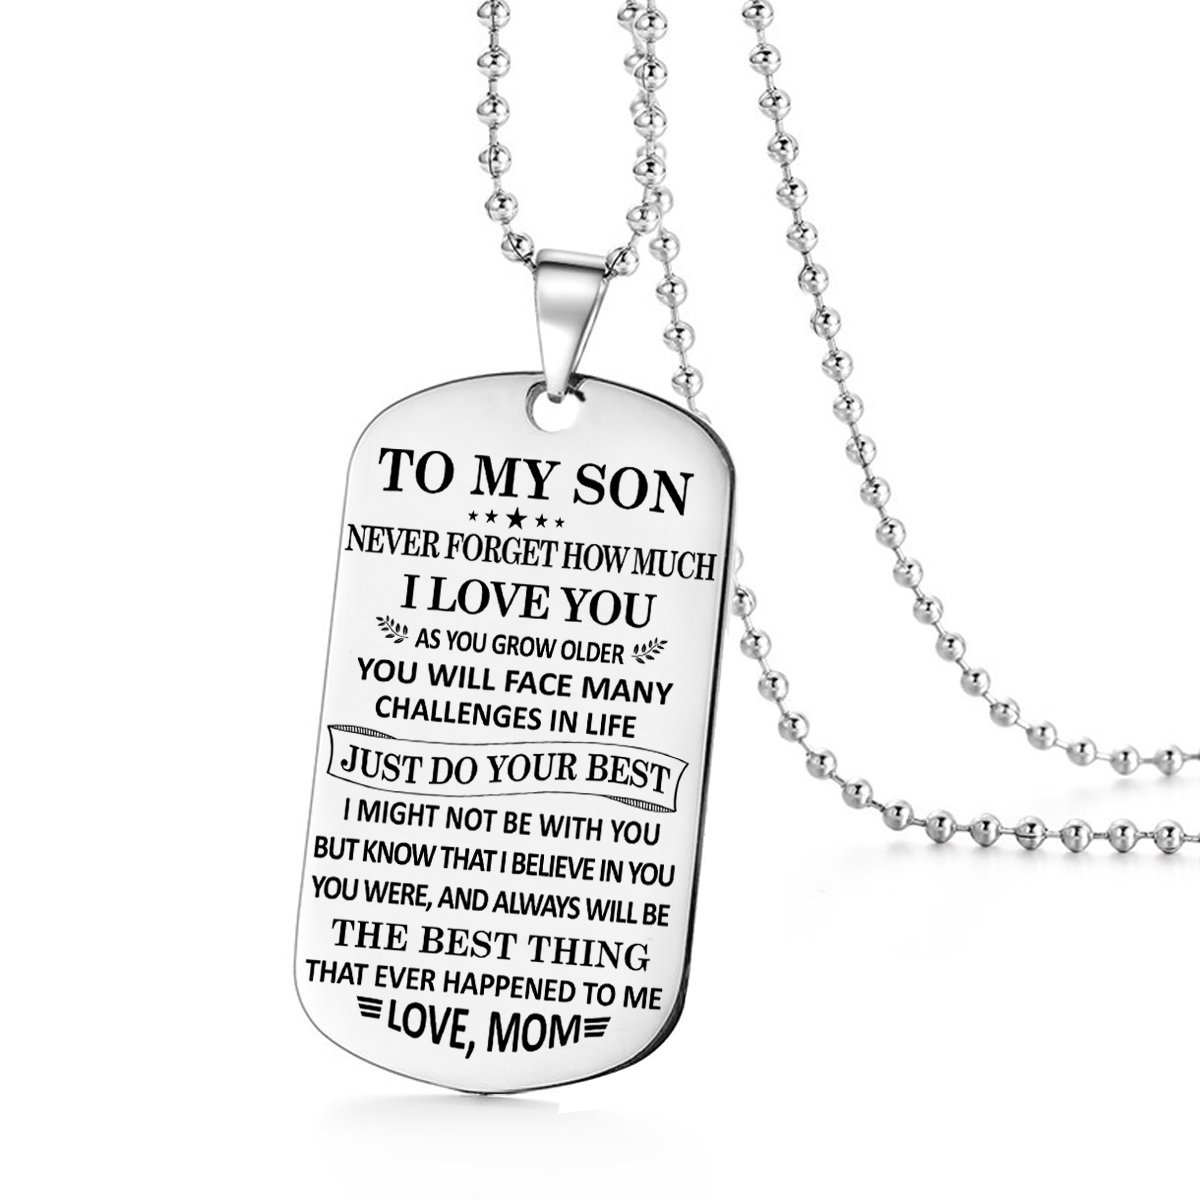 To My Son Just Do Your Best Love Mom Dog Tag Military Air Force Navy Coast Guard Necklace Ball Chain Gift for Best Son Birthday Graduation Stainless Steel